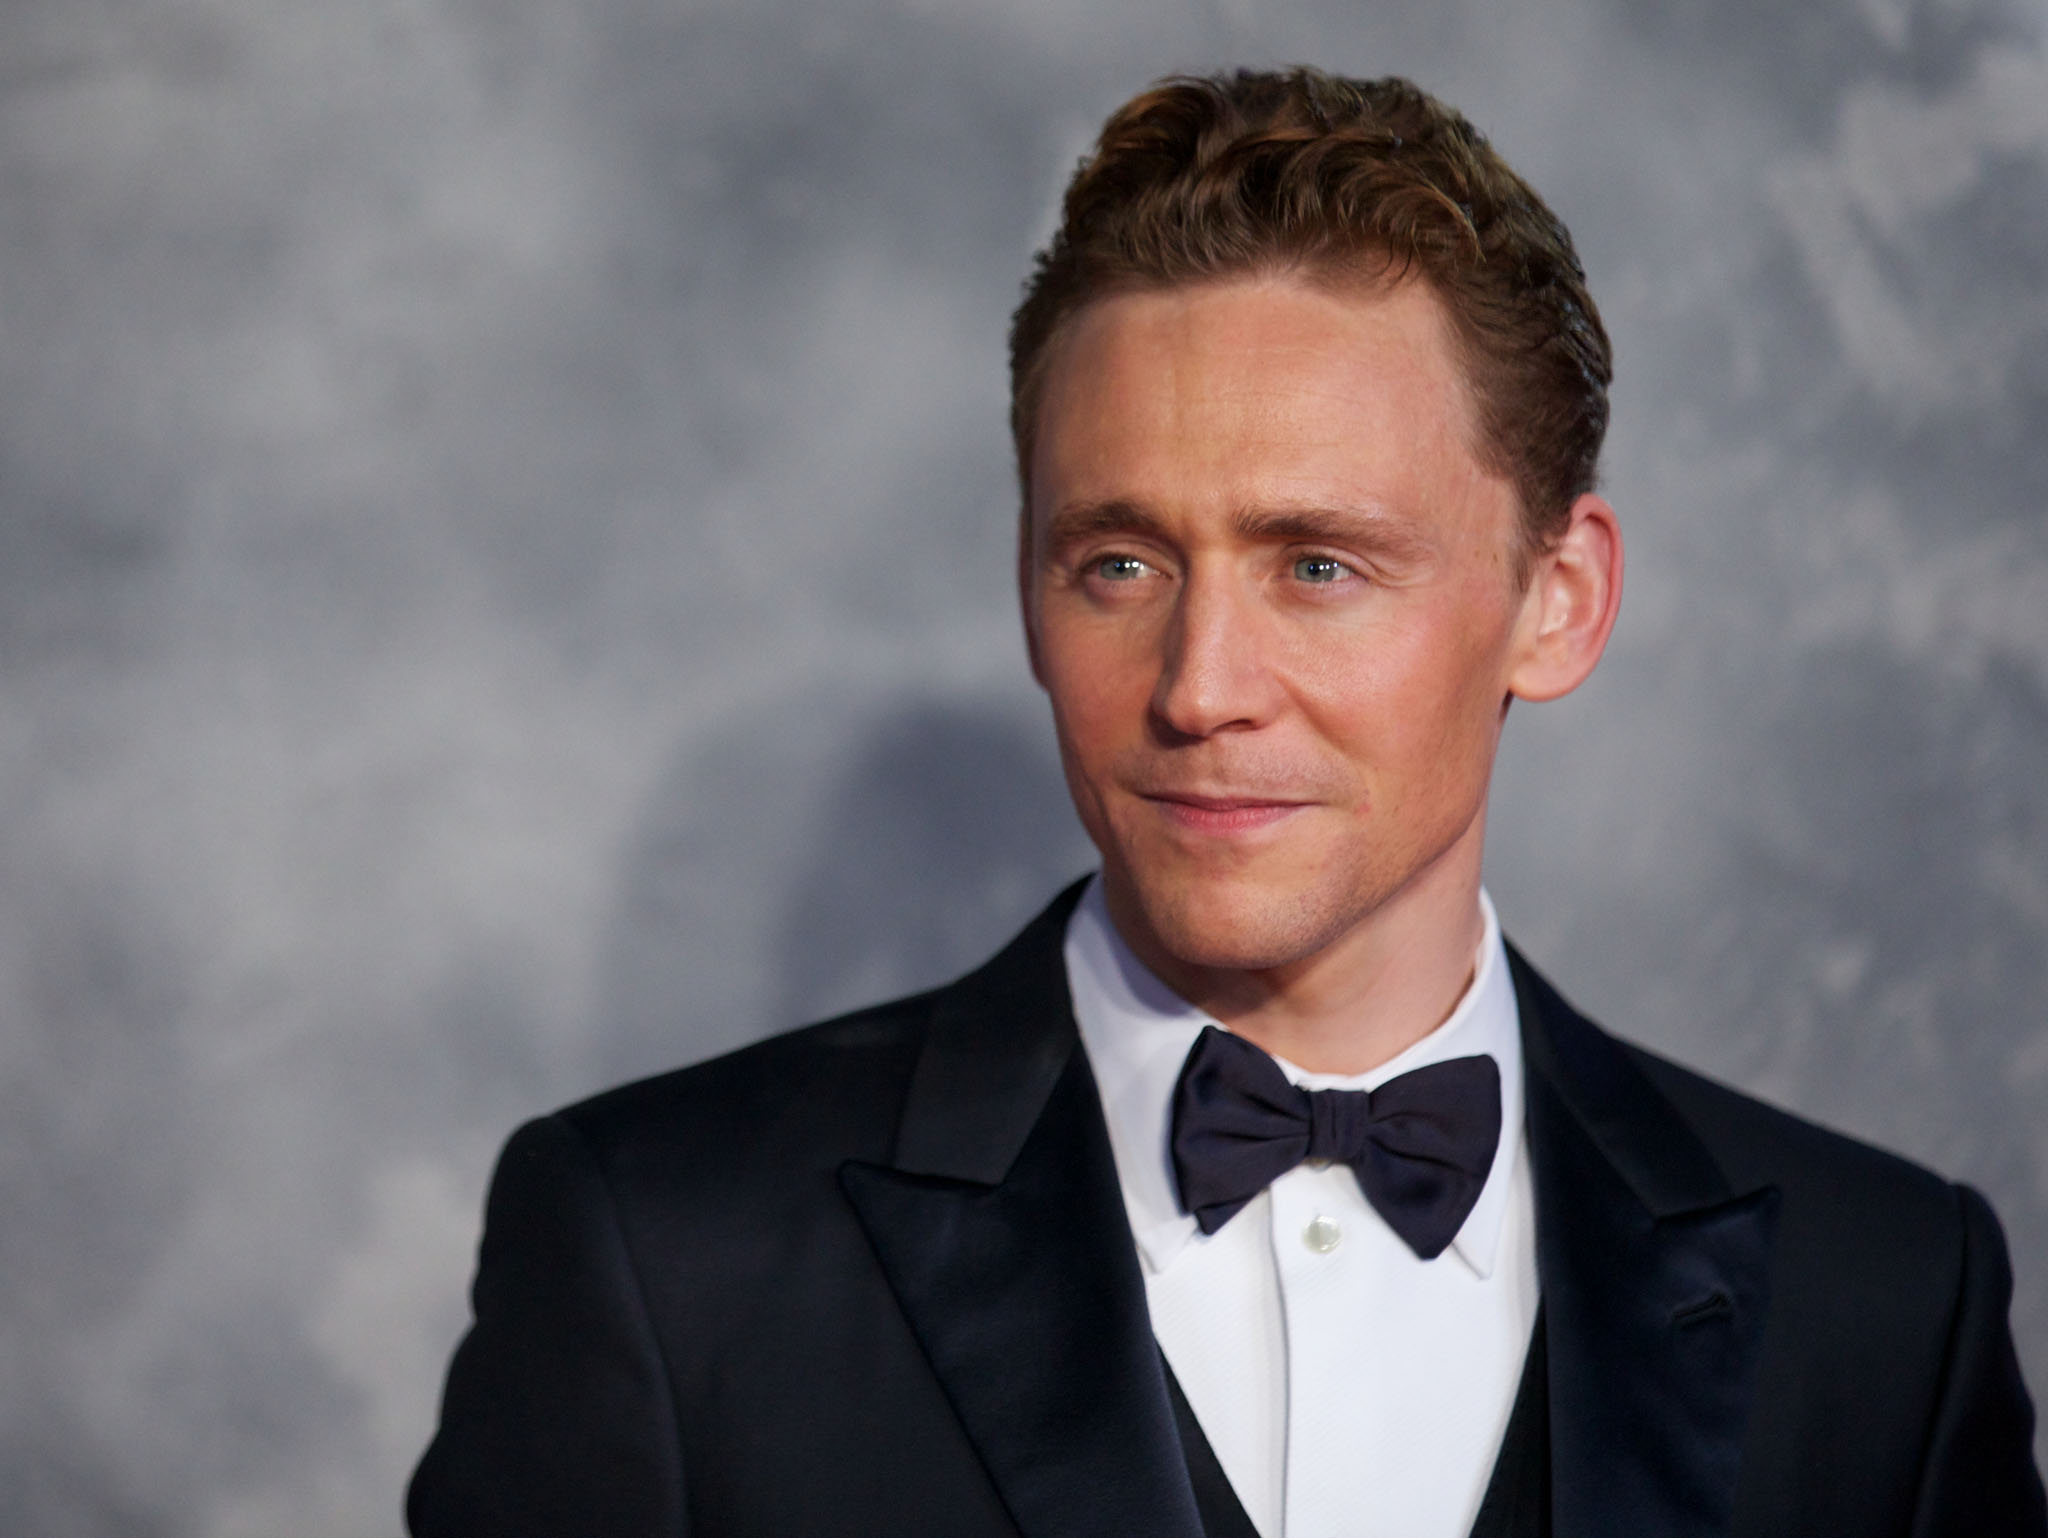 British actor Tom Hiddleston attends the world film premiere of 'Thor, The Dark World' in central London on October 22, 2013. AFP PHOTO/ANDREW COWIE        (Photo credit should read ANDREW COWIE/AFP/Getty Images)